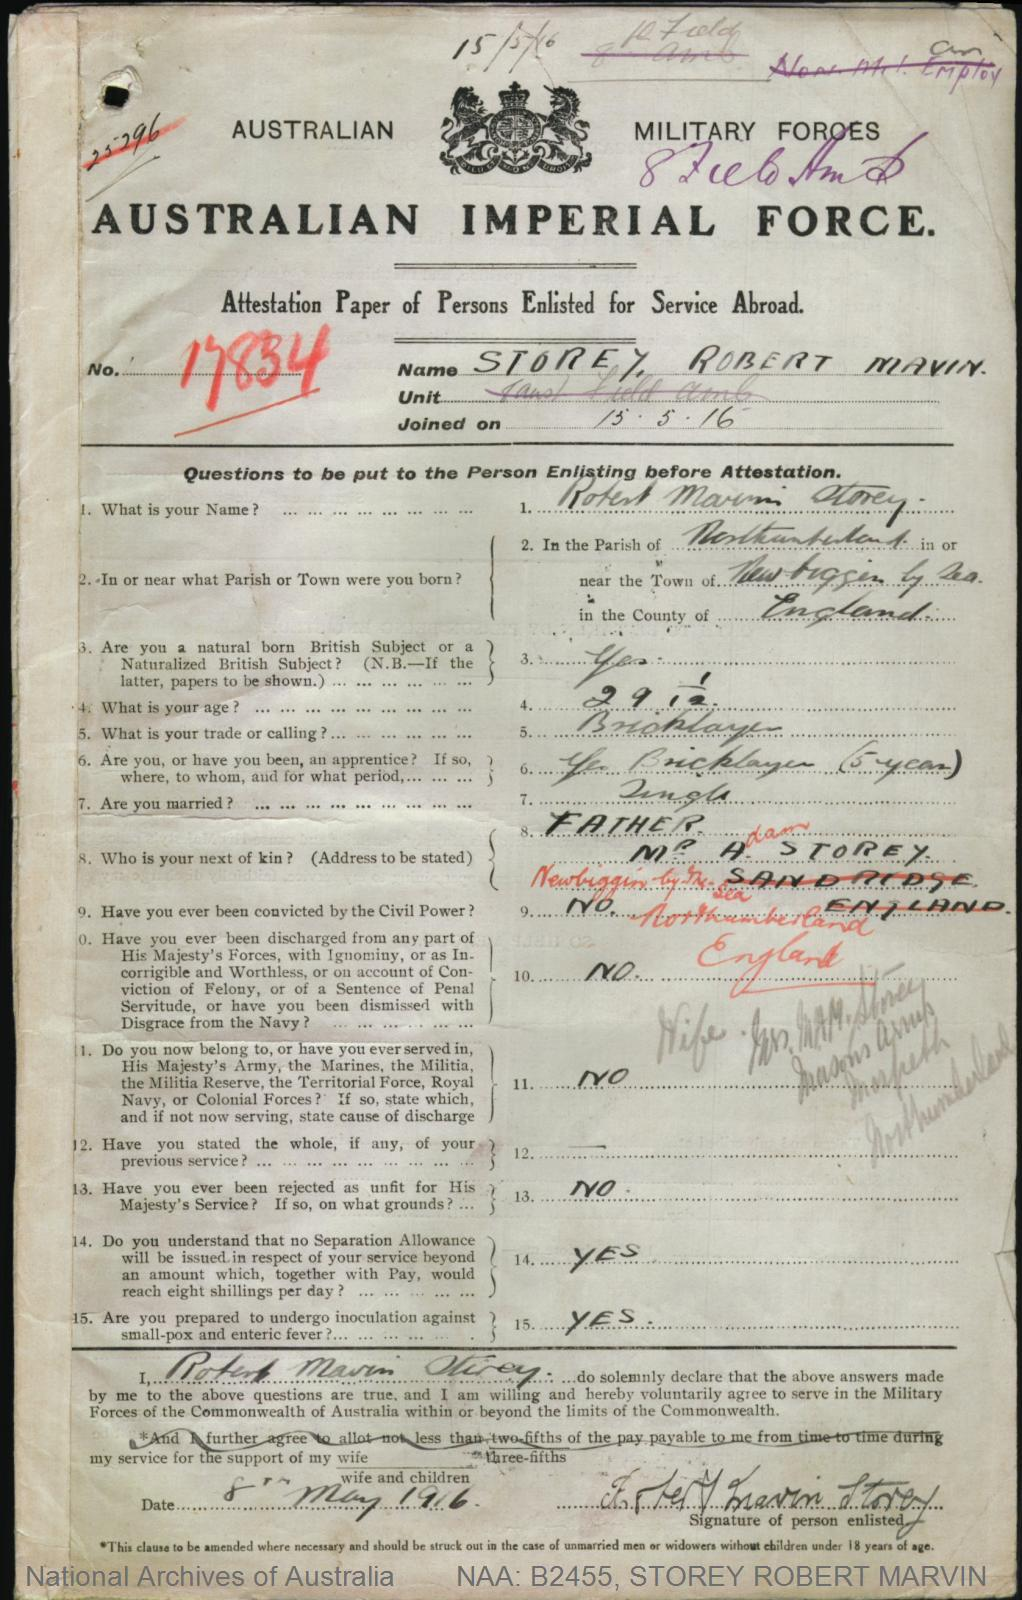 STOREY Robert Marvin : Service Number - 17834 : Place of Birth - Newbiggin By Sea England : Place of Enlistment - Teralba NSW : Next of Kin - (Father) STOREY Adam